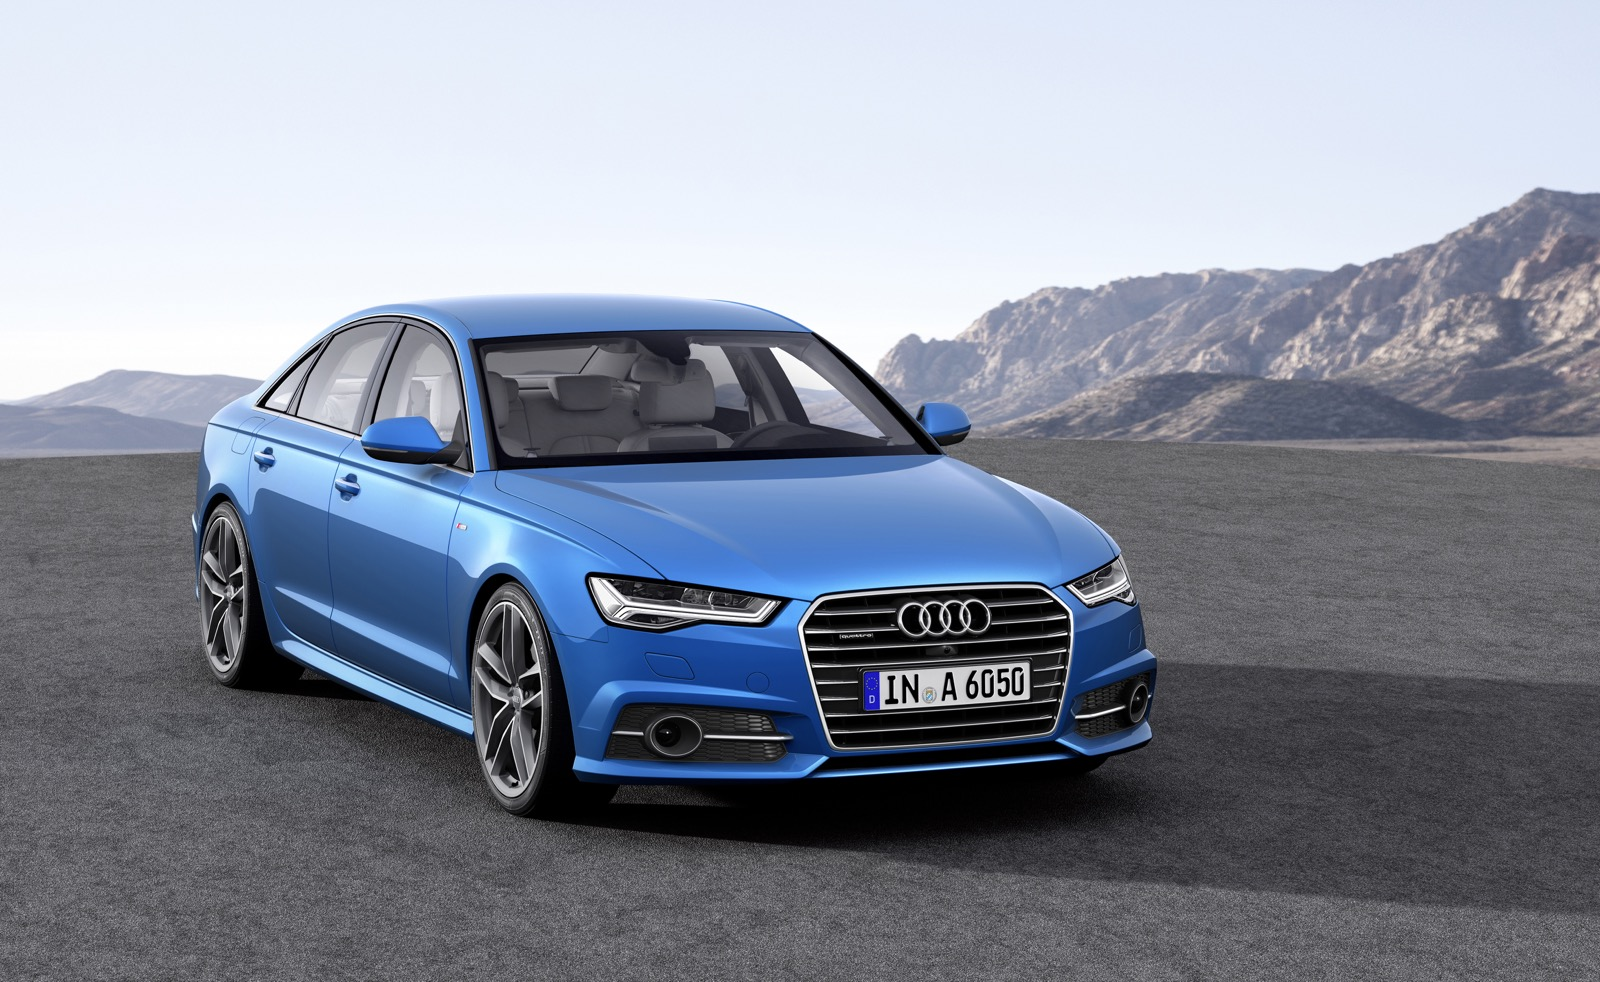 Amazing 2015 Audi A6 Review  CarAdvice